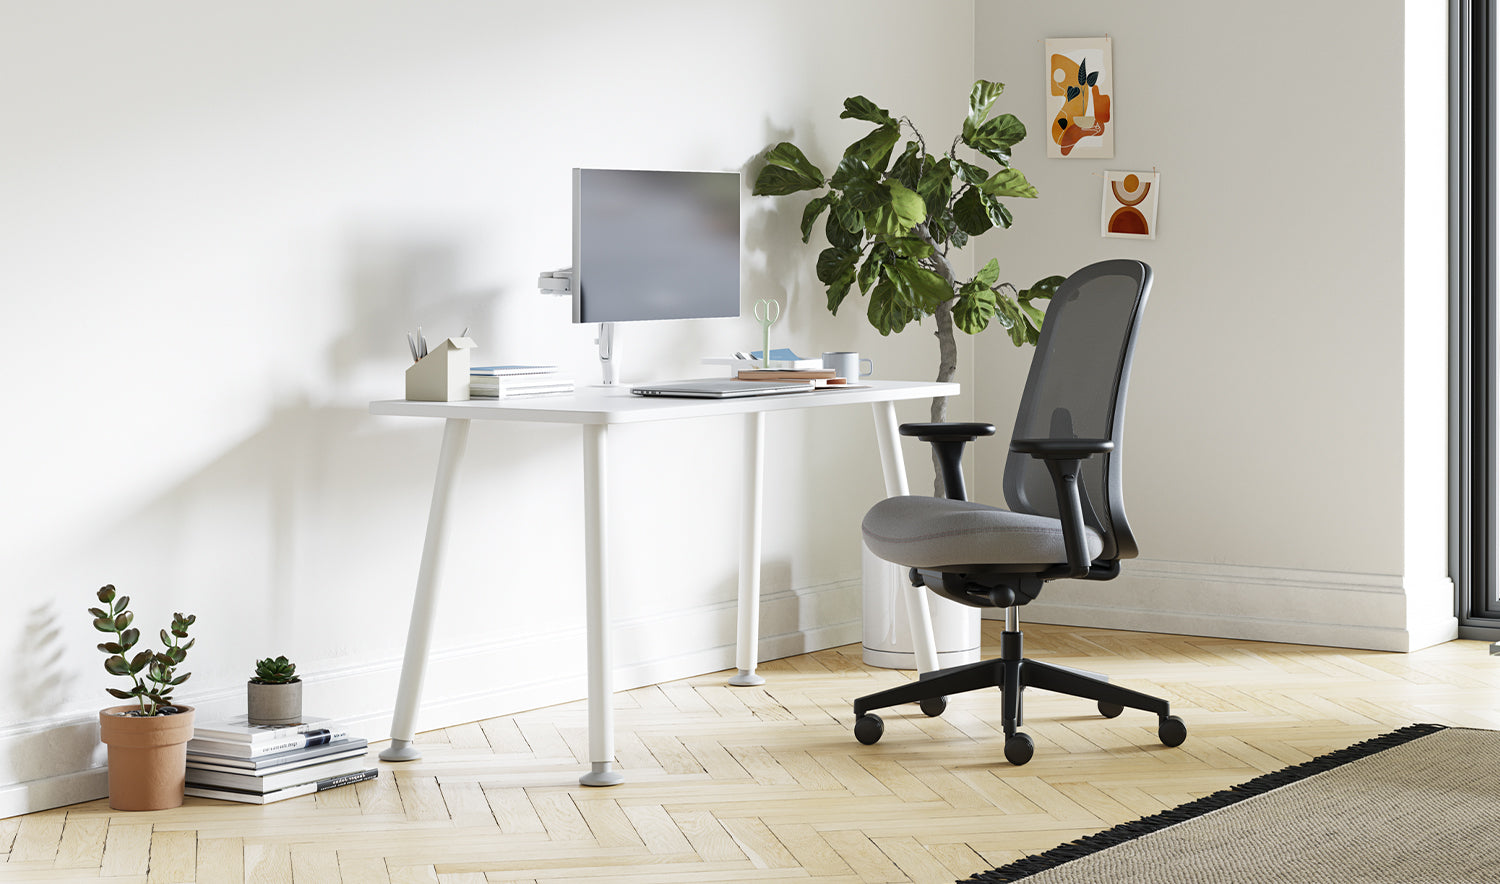 A white Memo desk with grey Lino chair in a home office